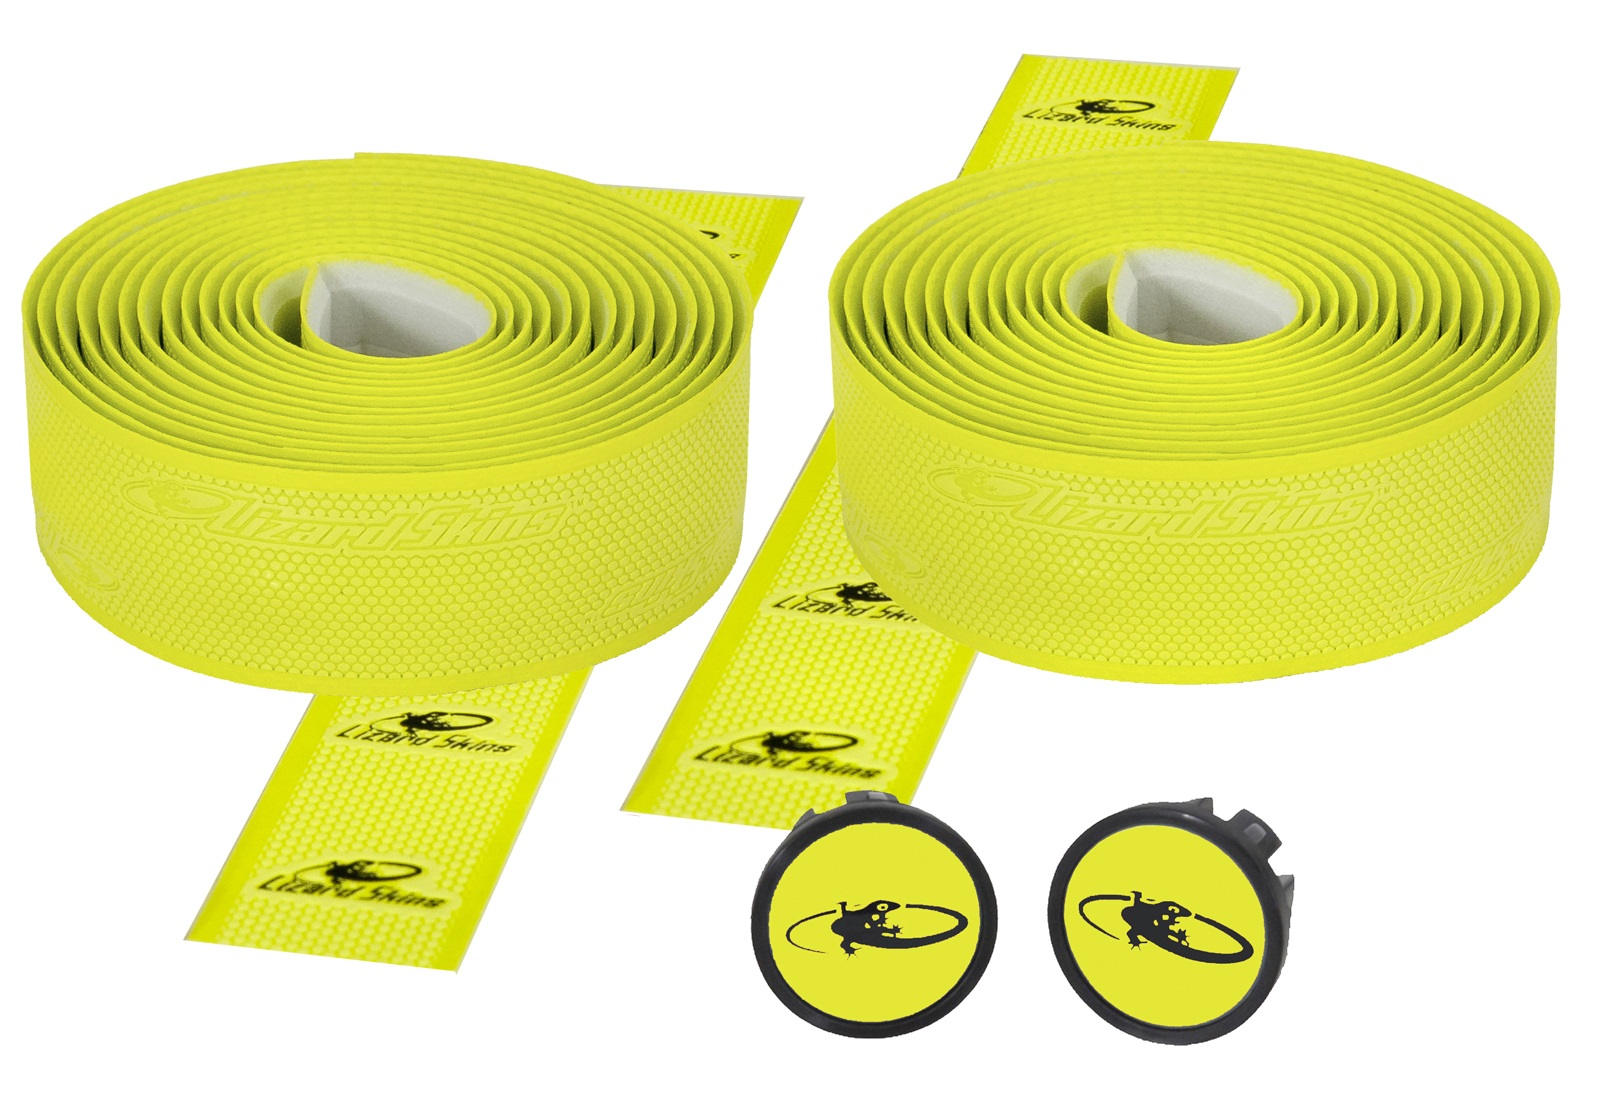 Lizardskins DSP 3.2 Handlebar Tape 3.2x226mm - Neon Yellow